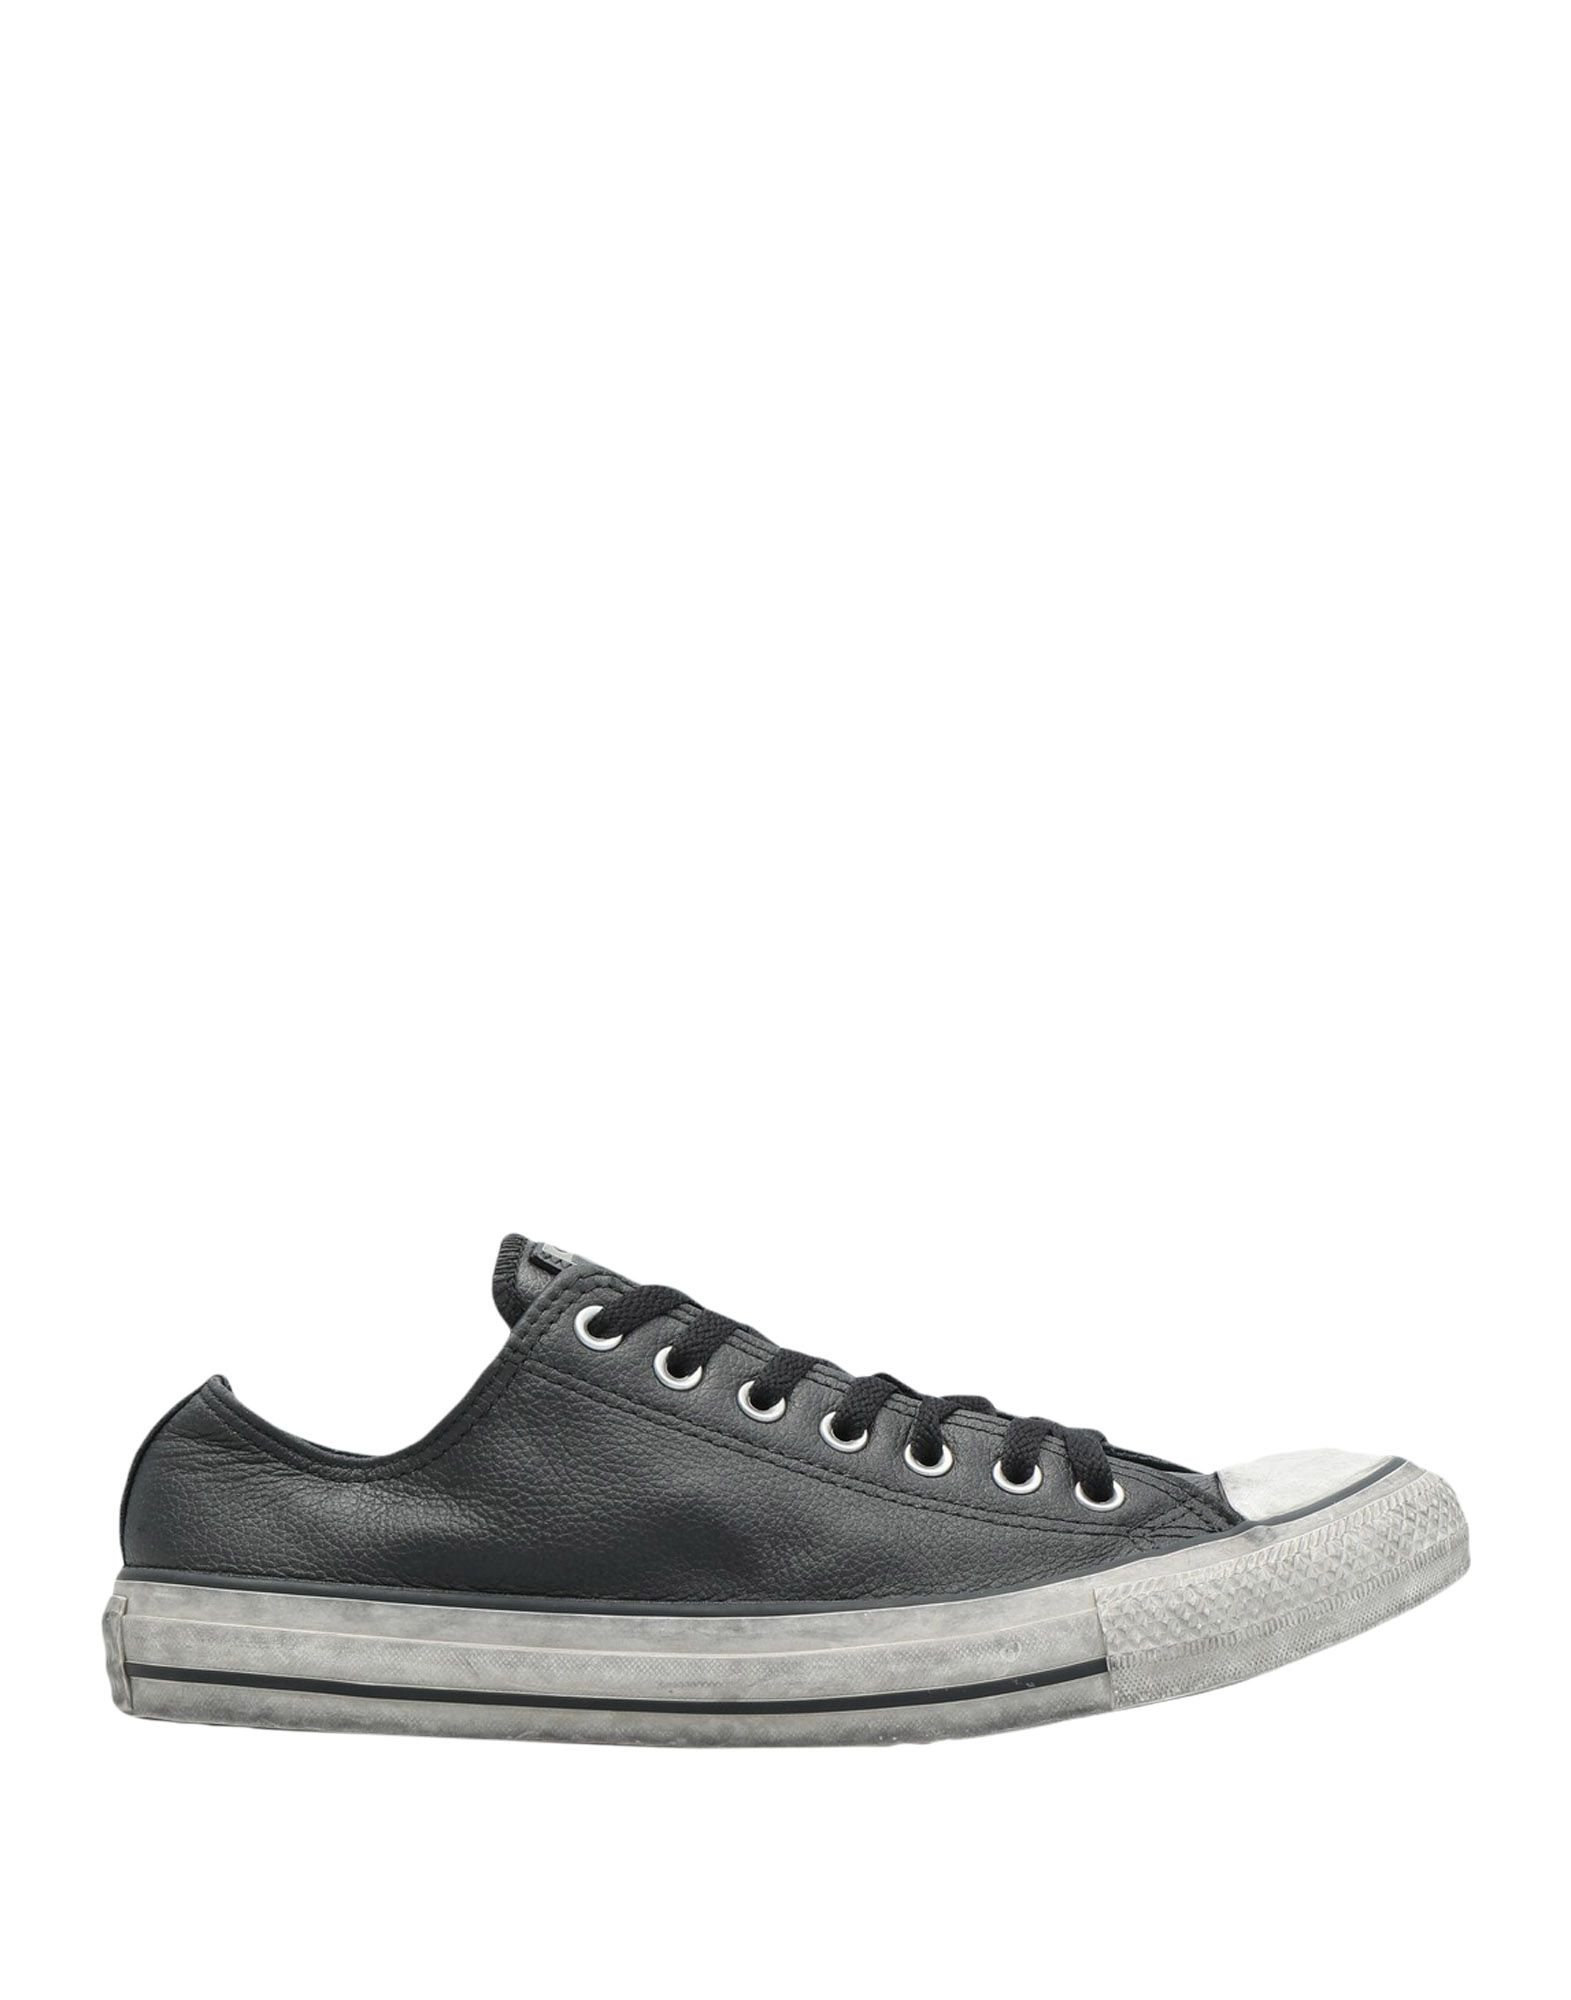 baskets Converse Limited Edition Ctas-Leather-Ltd-Ox - Homme - baskets Converse Limited Edition   - 11594867RK